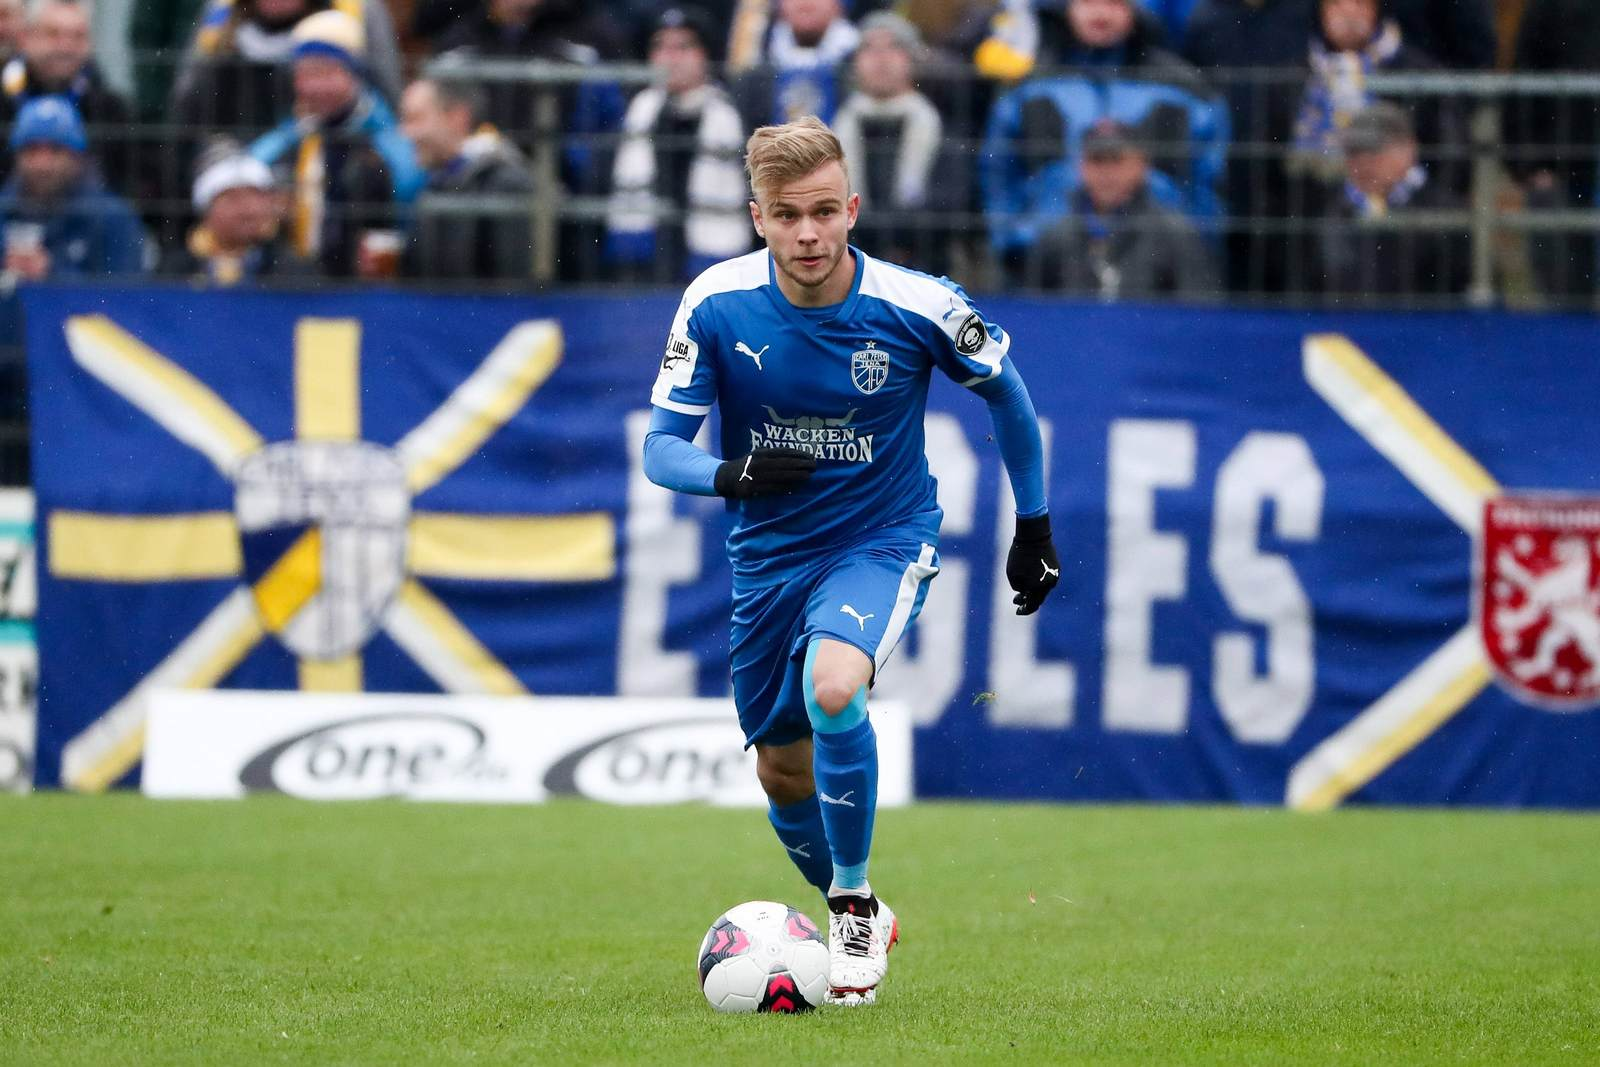 Guillaume Cros vom FC Carl Zeiss